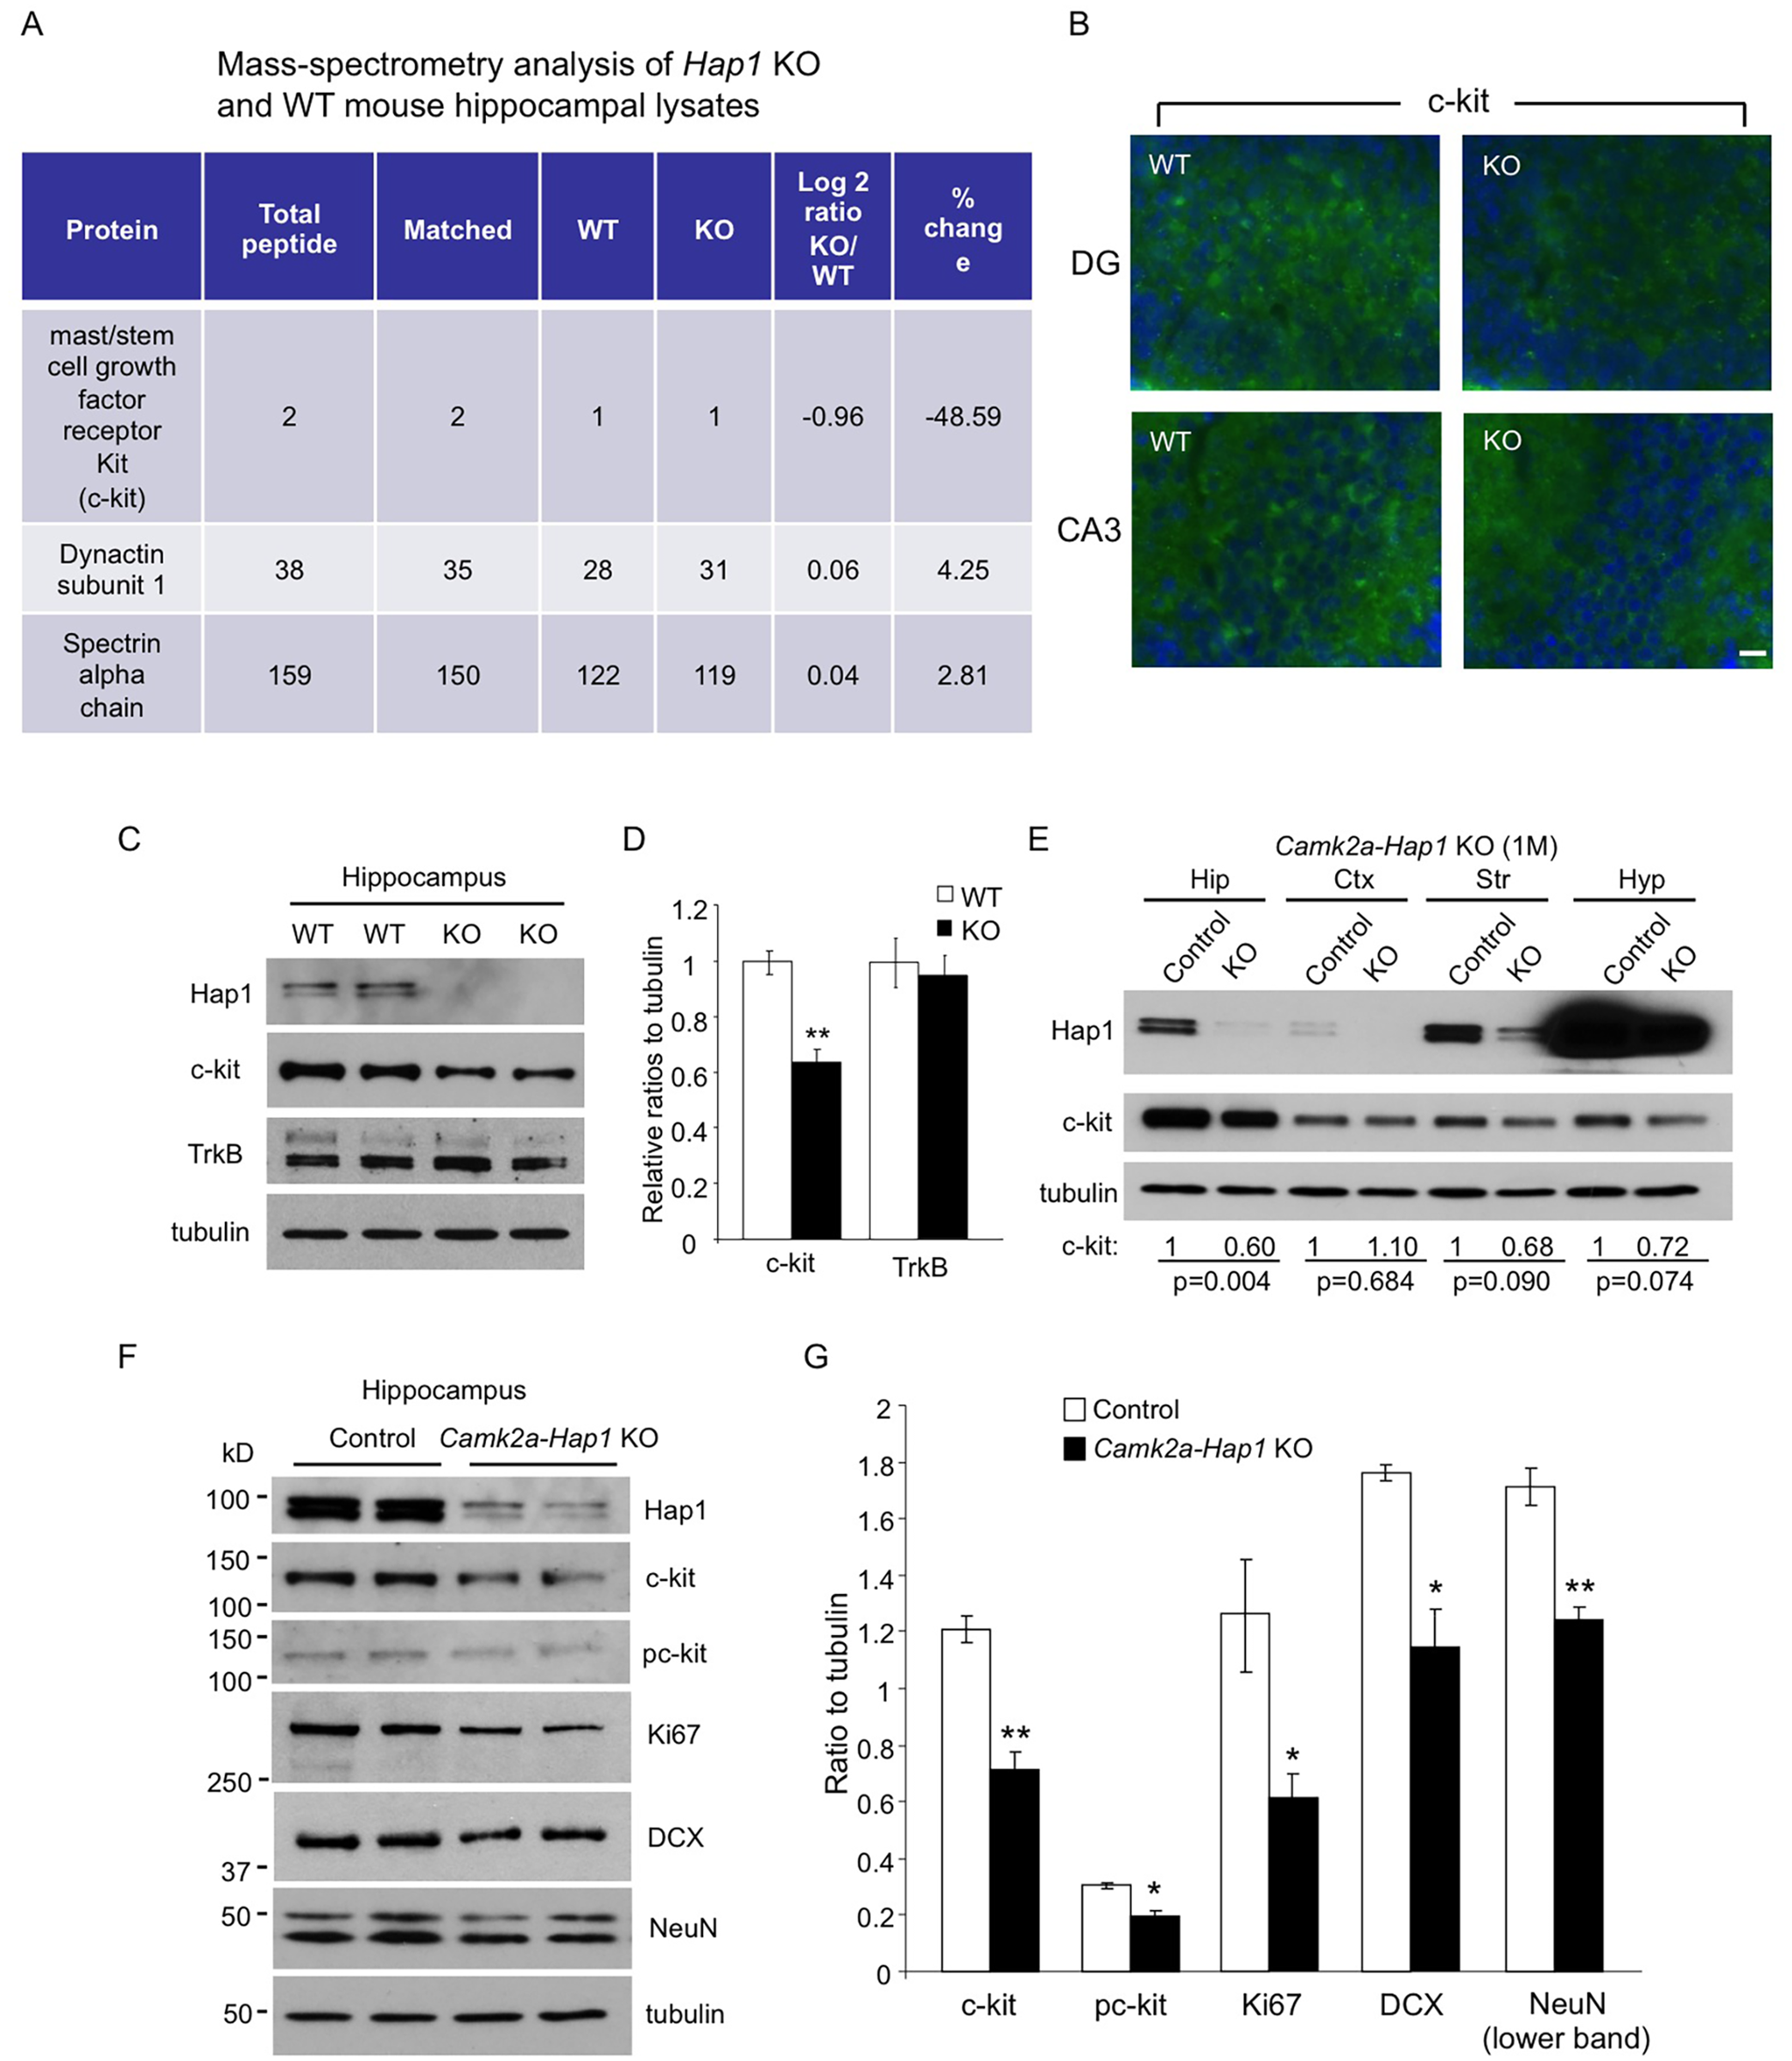 c-kit expression level is reduced in <i>Hap1</i> KO hippocampus.